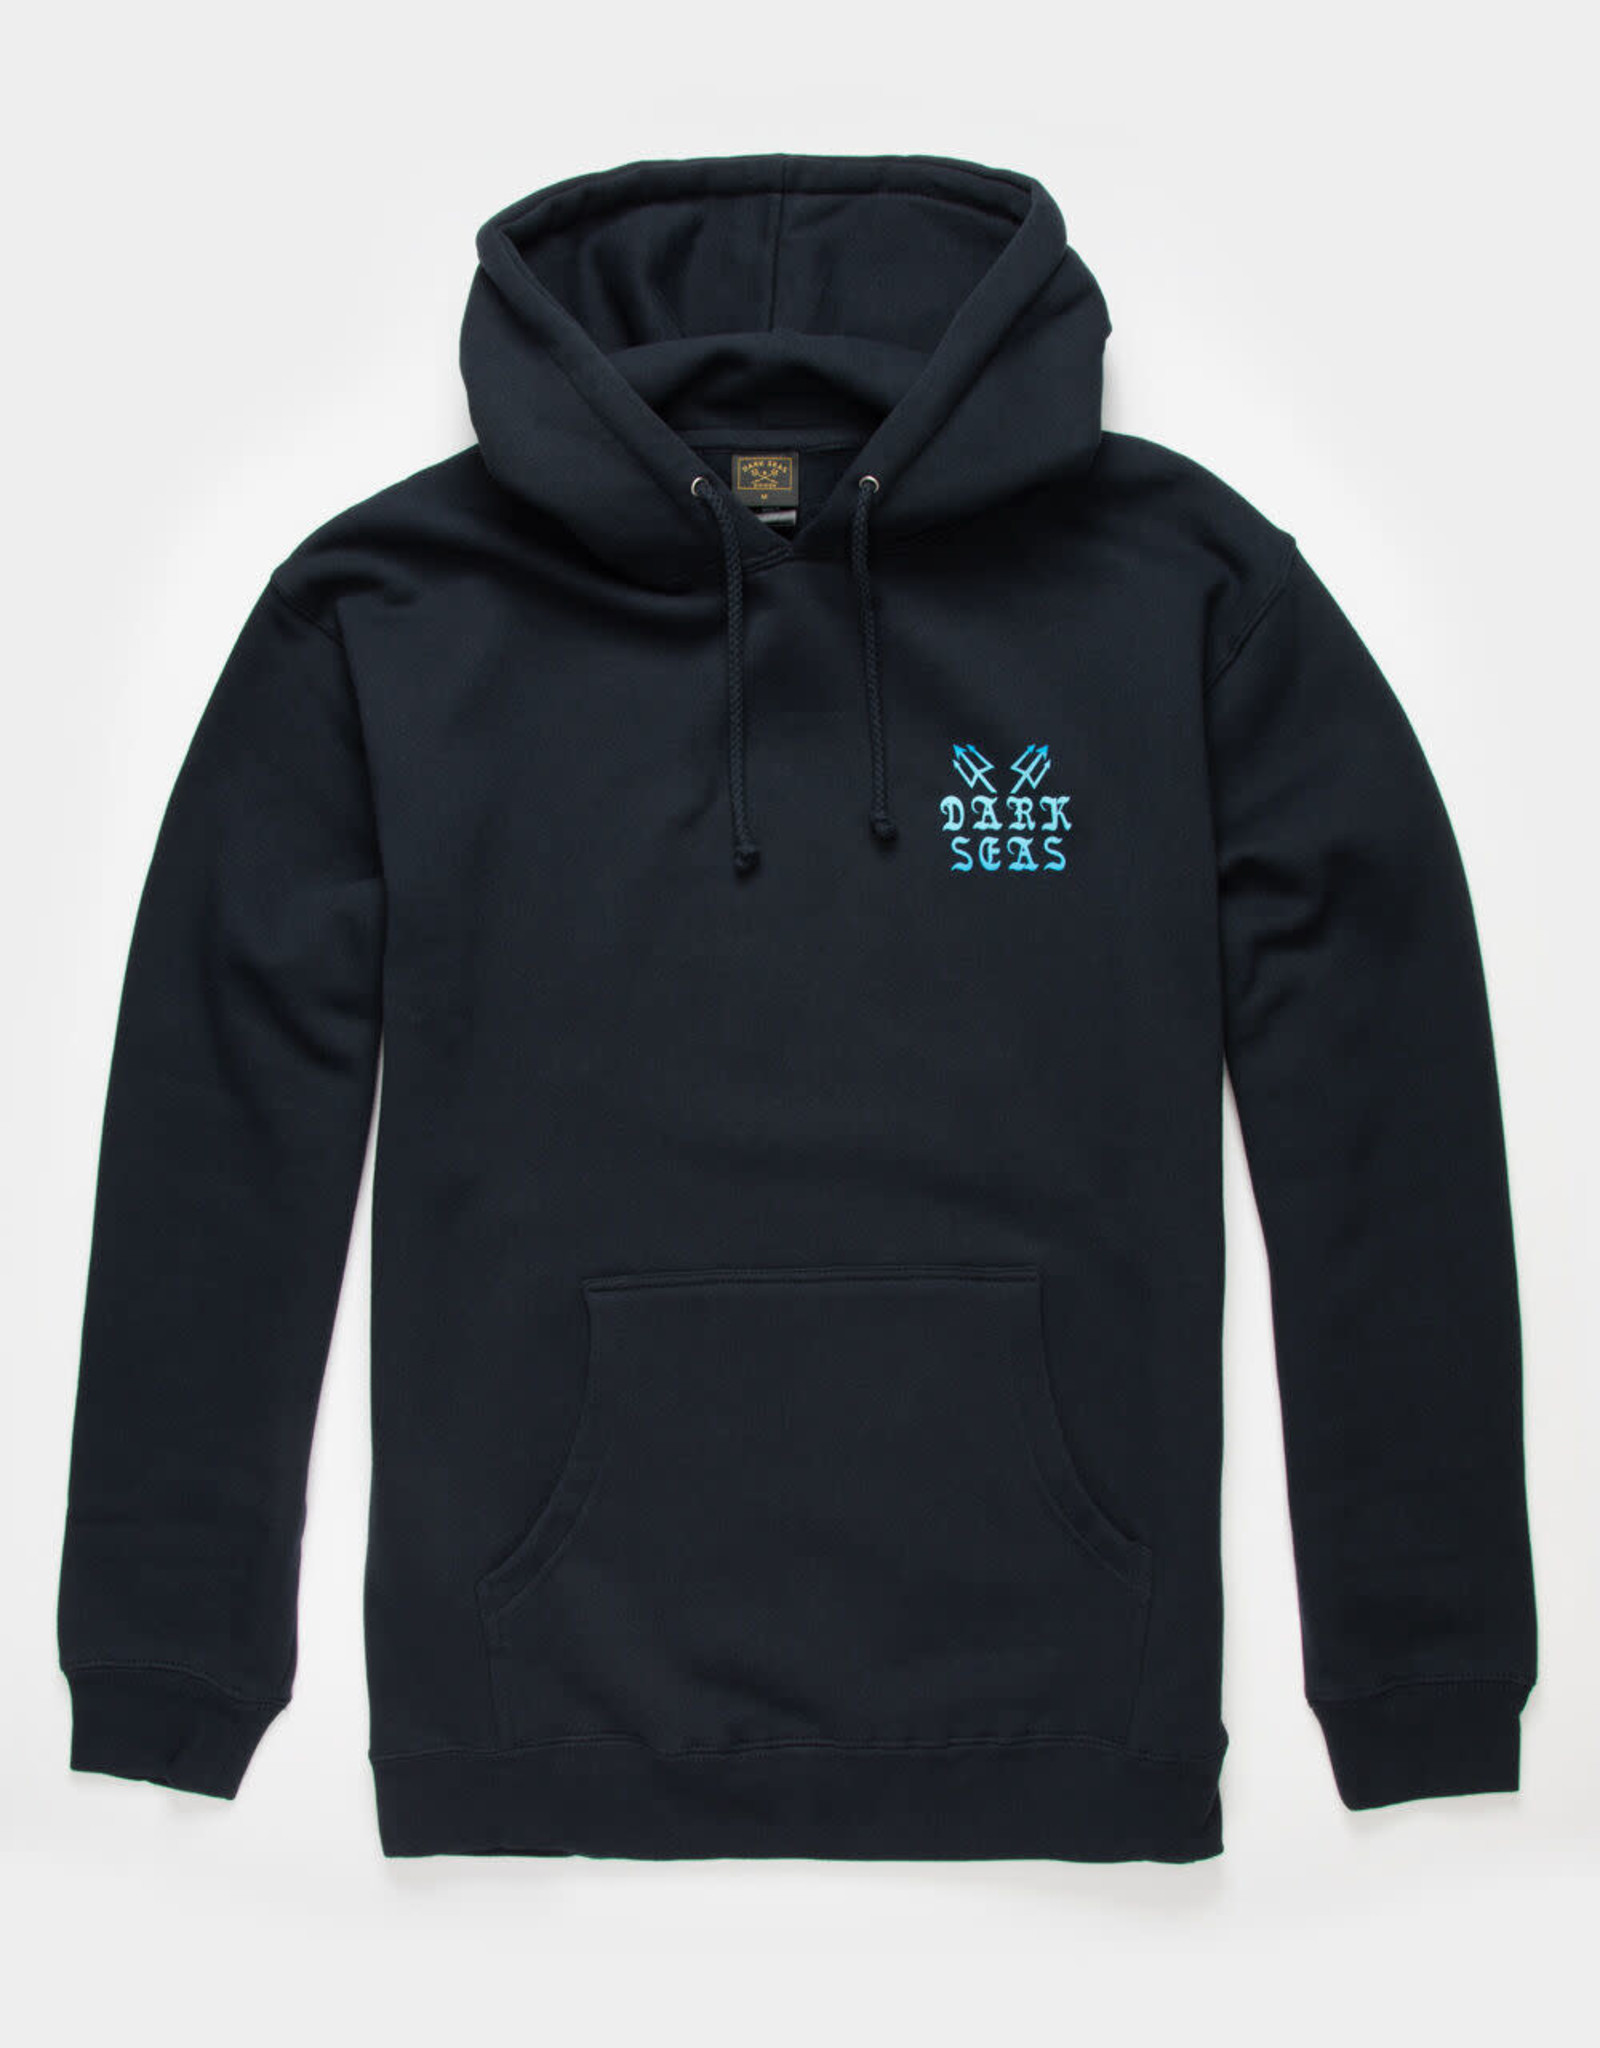 DARK SEAS Unlock-Fleece